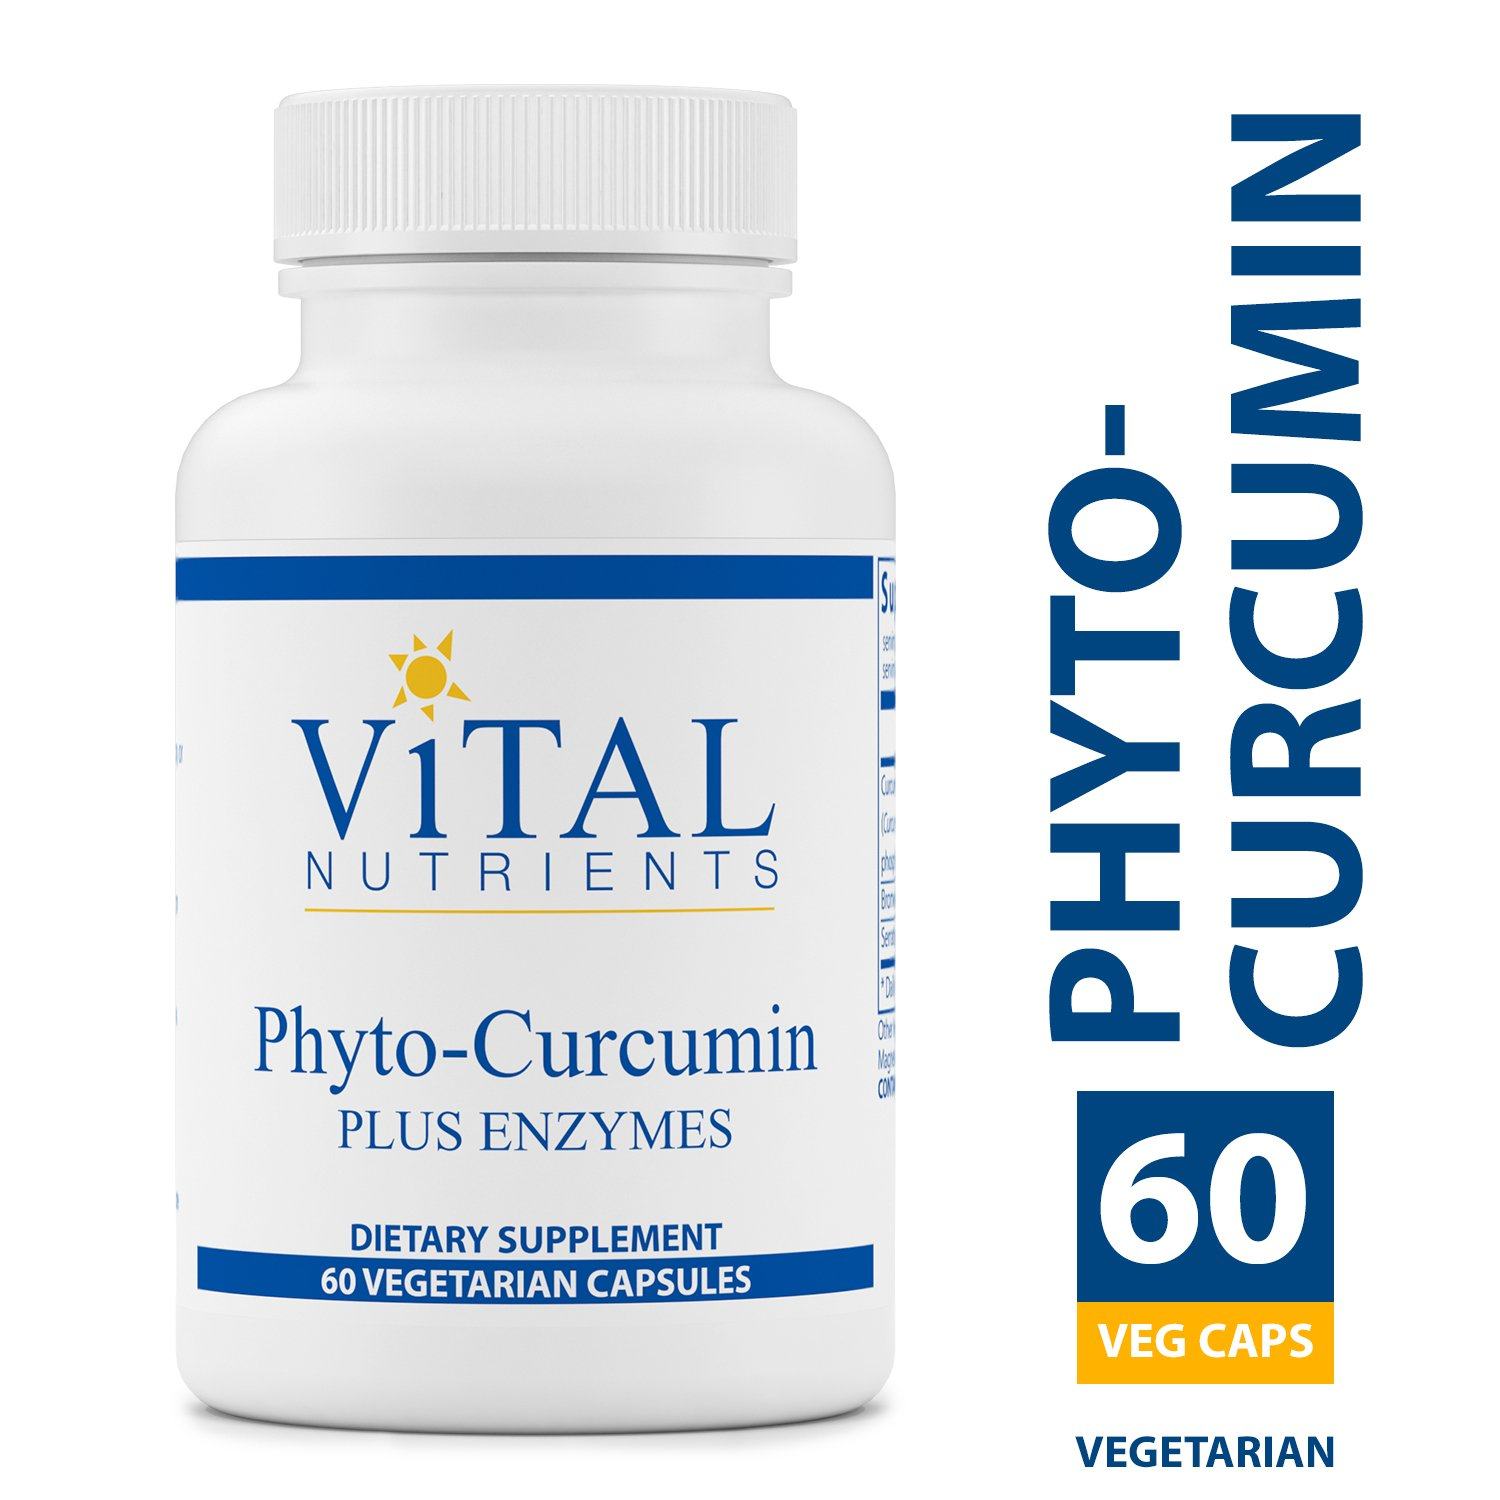 Vital Nutrients – Phyto-Curcumin Plus Enzymes – Helps Maintain and Support Healthy Inflammatory Balance – 60 Vegetarian Capsules per Bottle